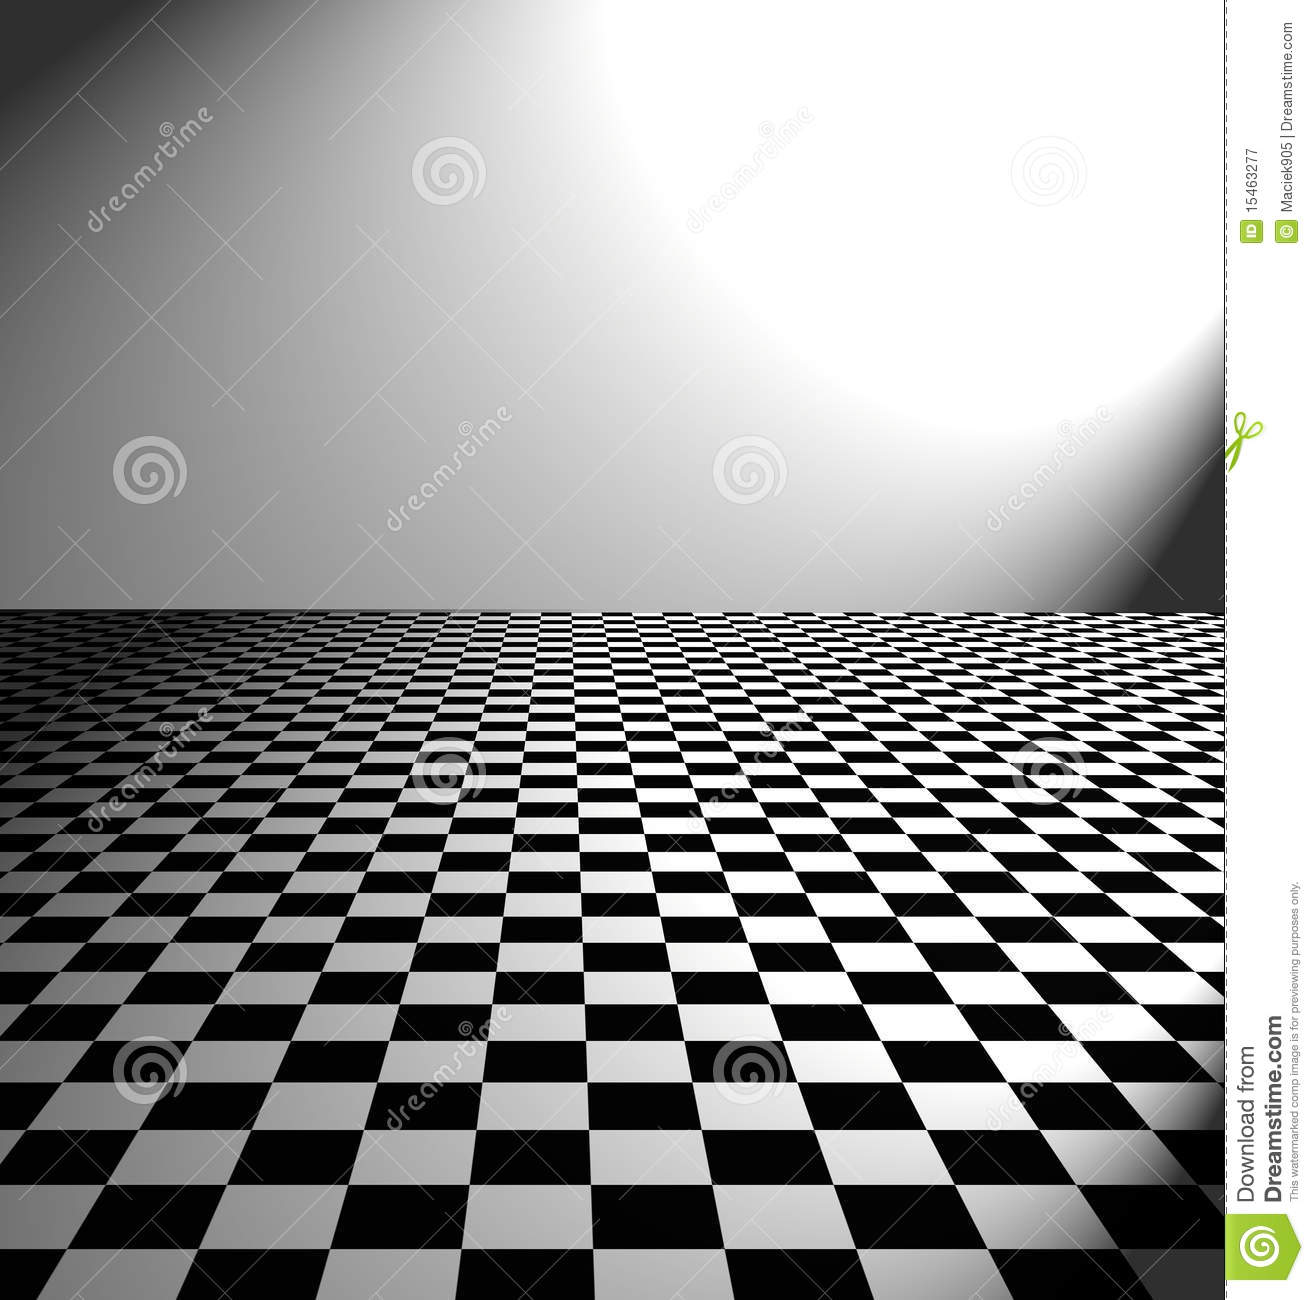 Large black and white checker floor stock illustration large black and white checker floor dailygadgetfo Choice Image